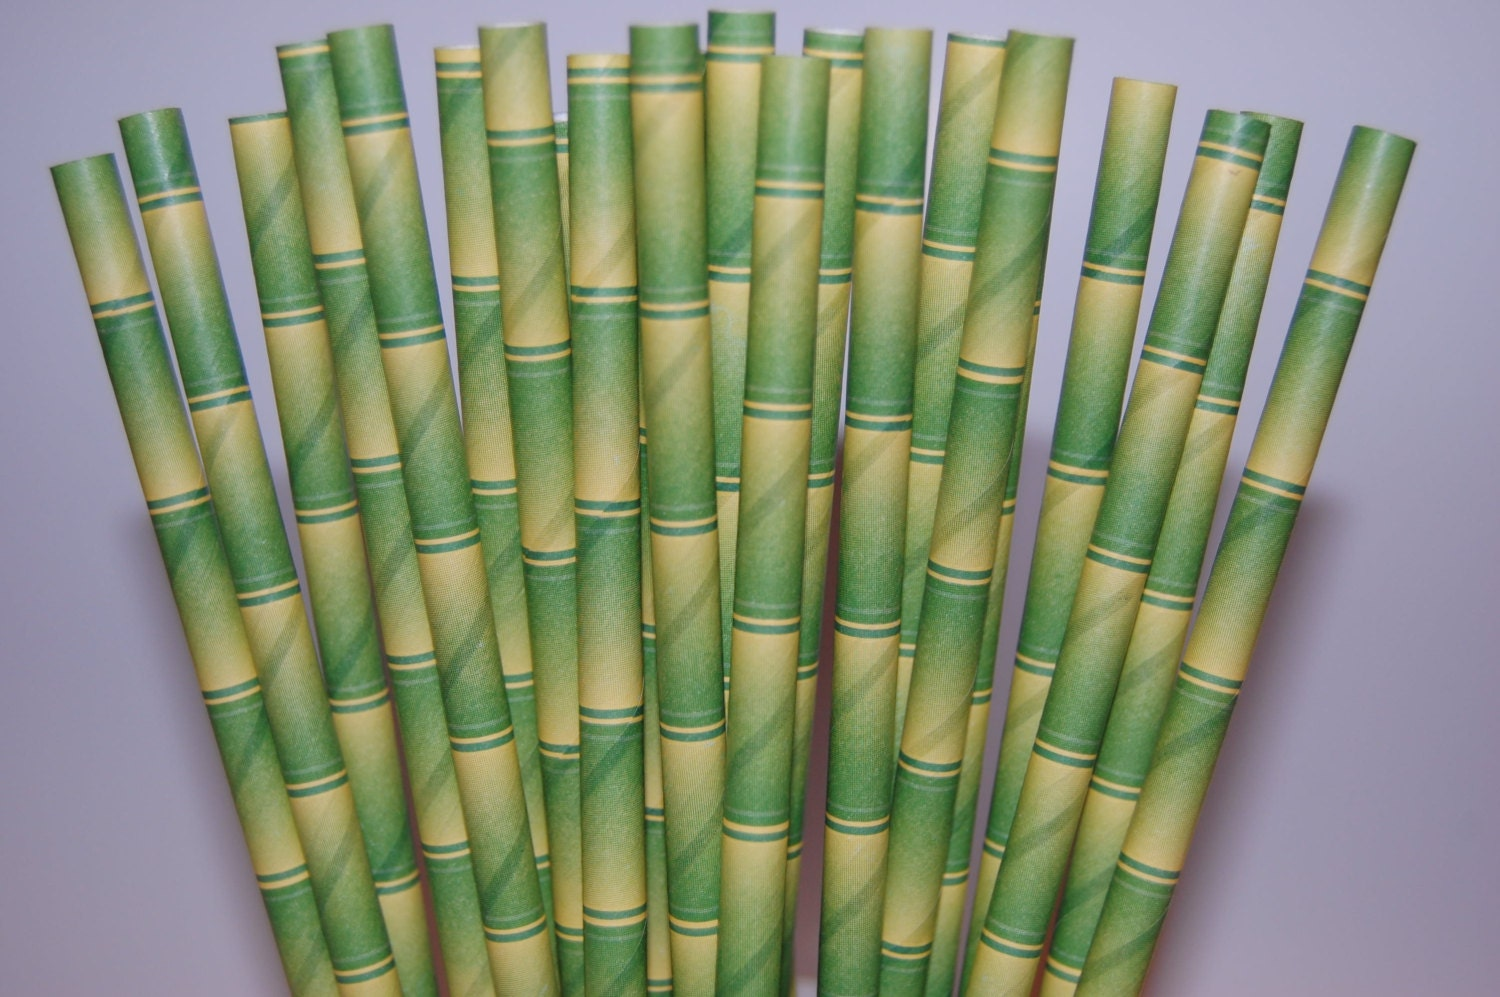 bamboo paper Download bamboo paper apk (latest version) for samsung, huawei, xiaomi, lg, htc, lenovo and all other android phones, tablets and devices.